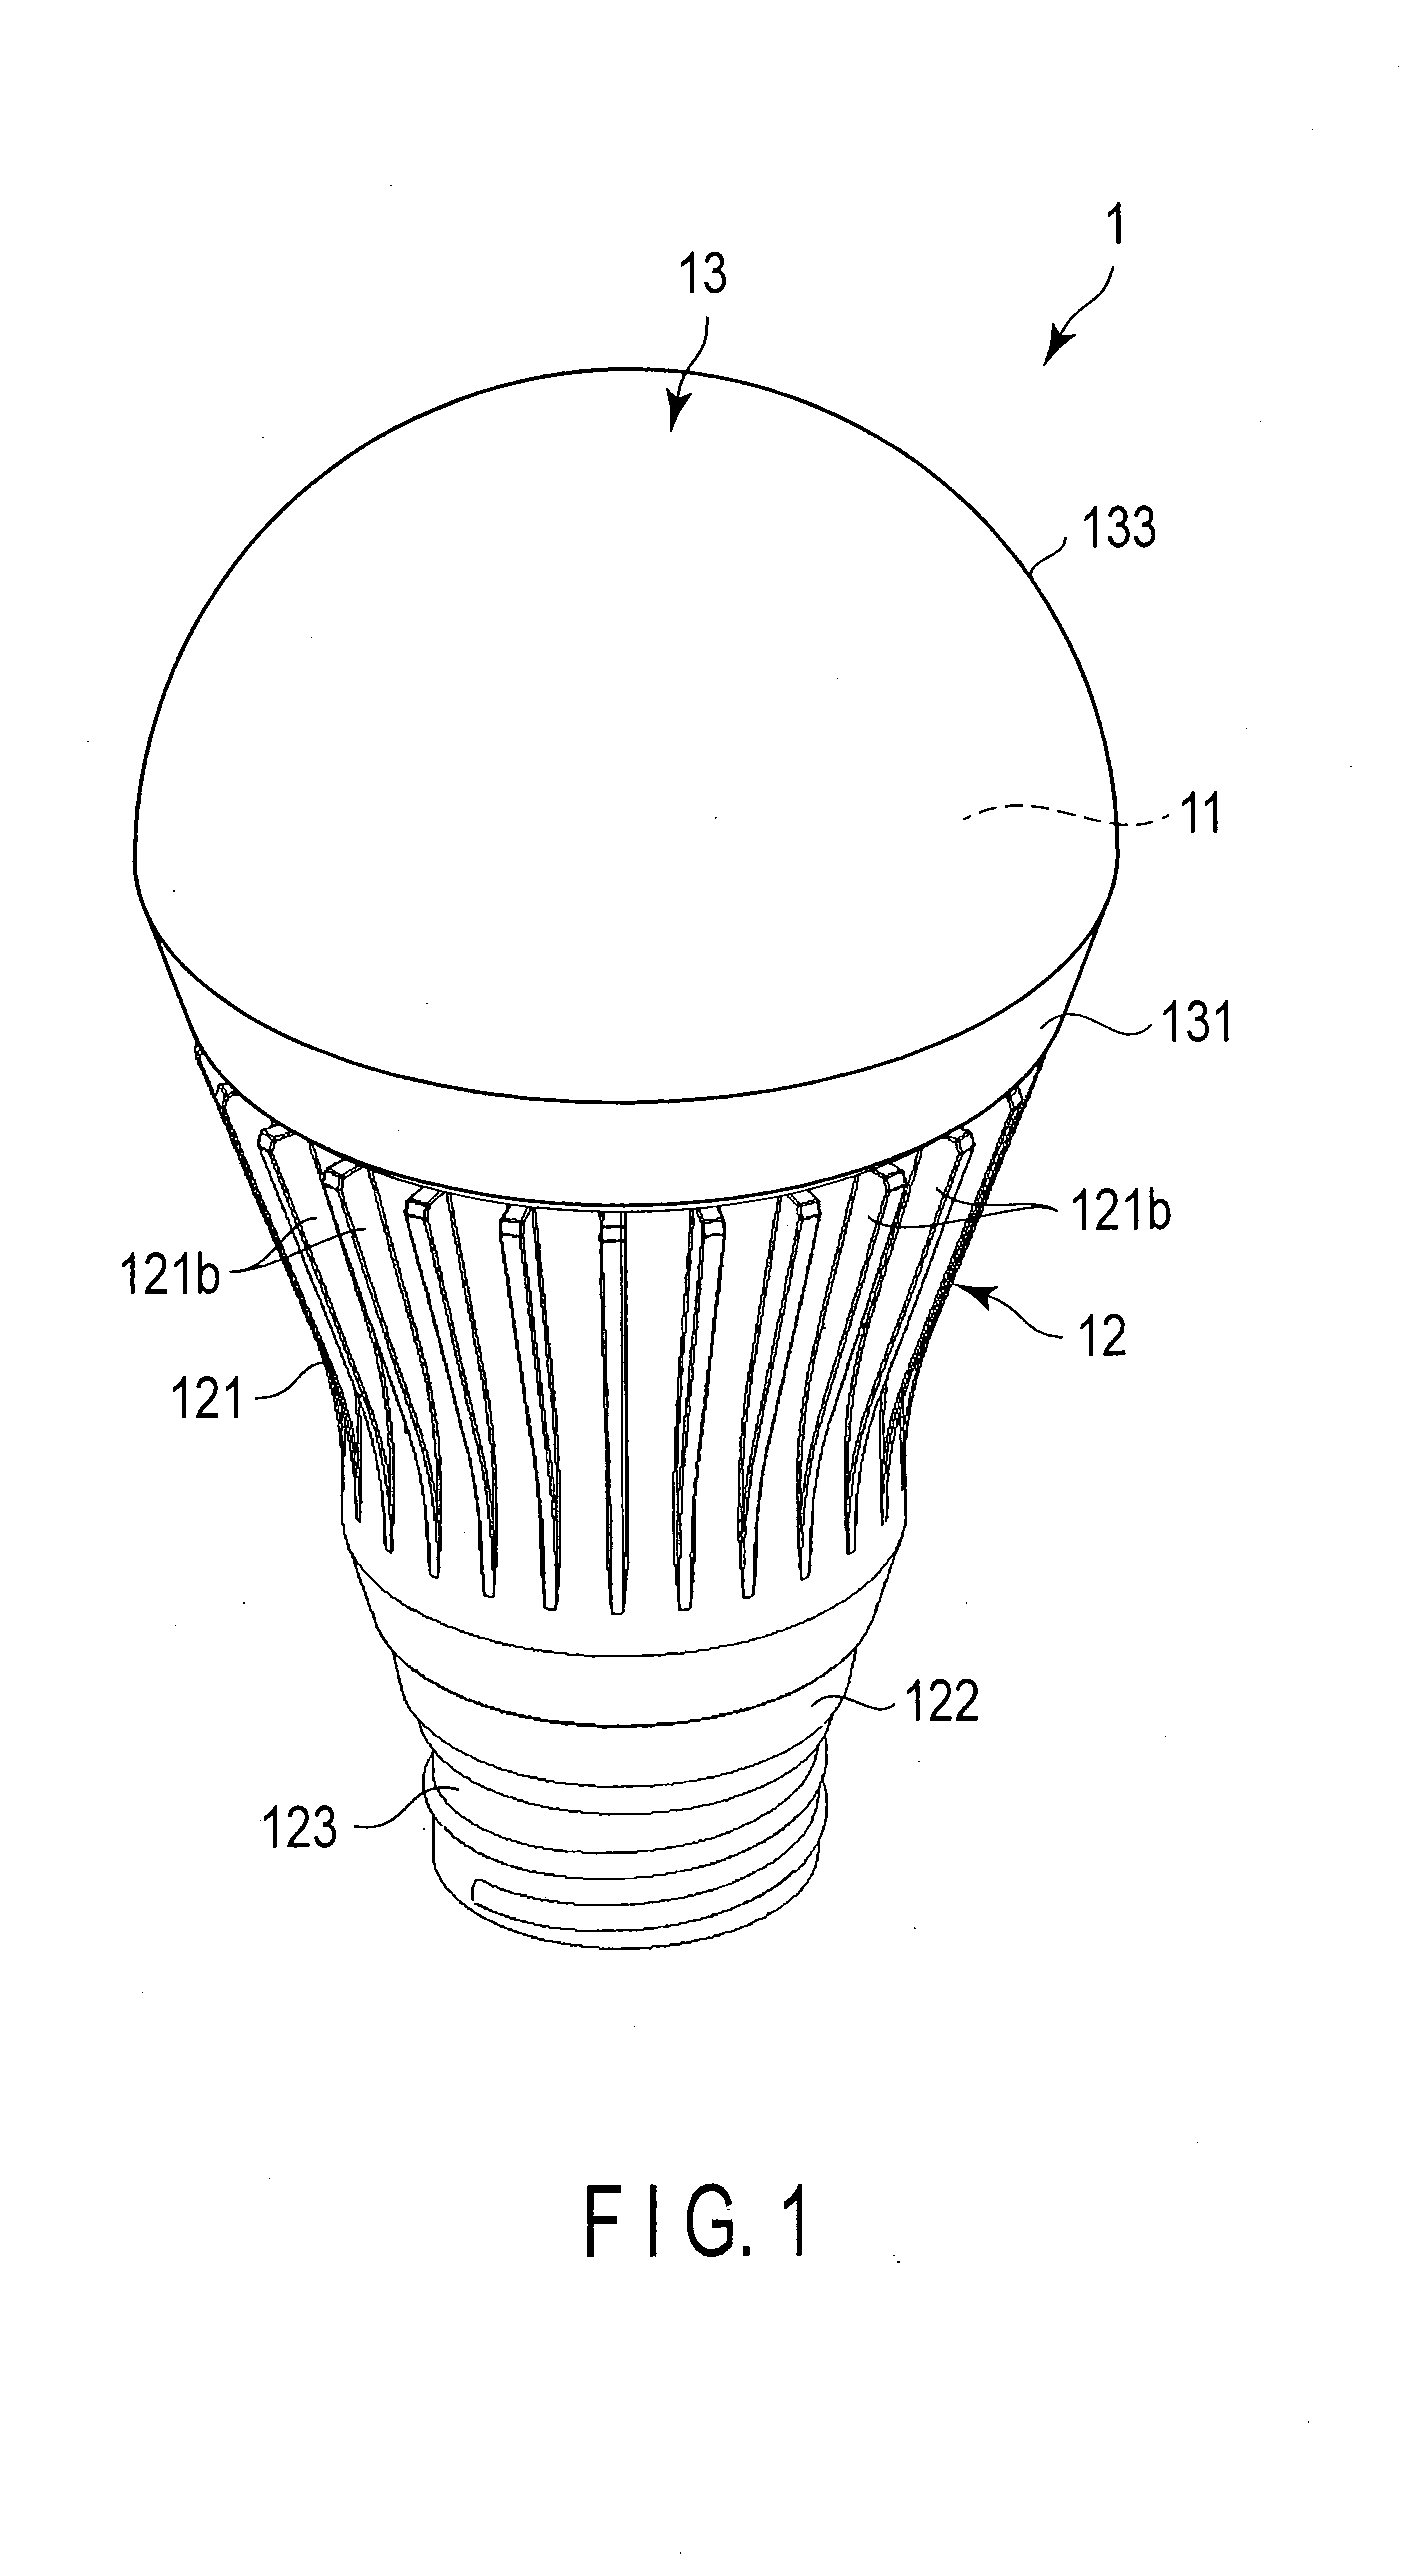 US20130027938 on light emitting diode technology